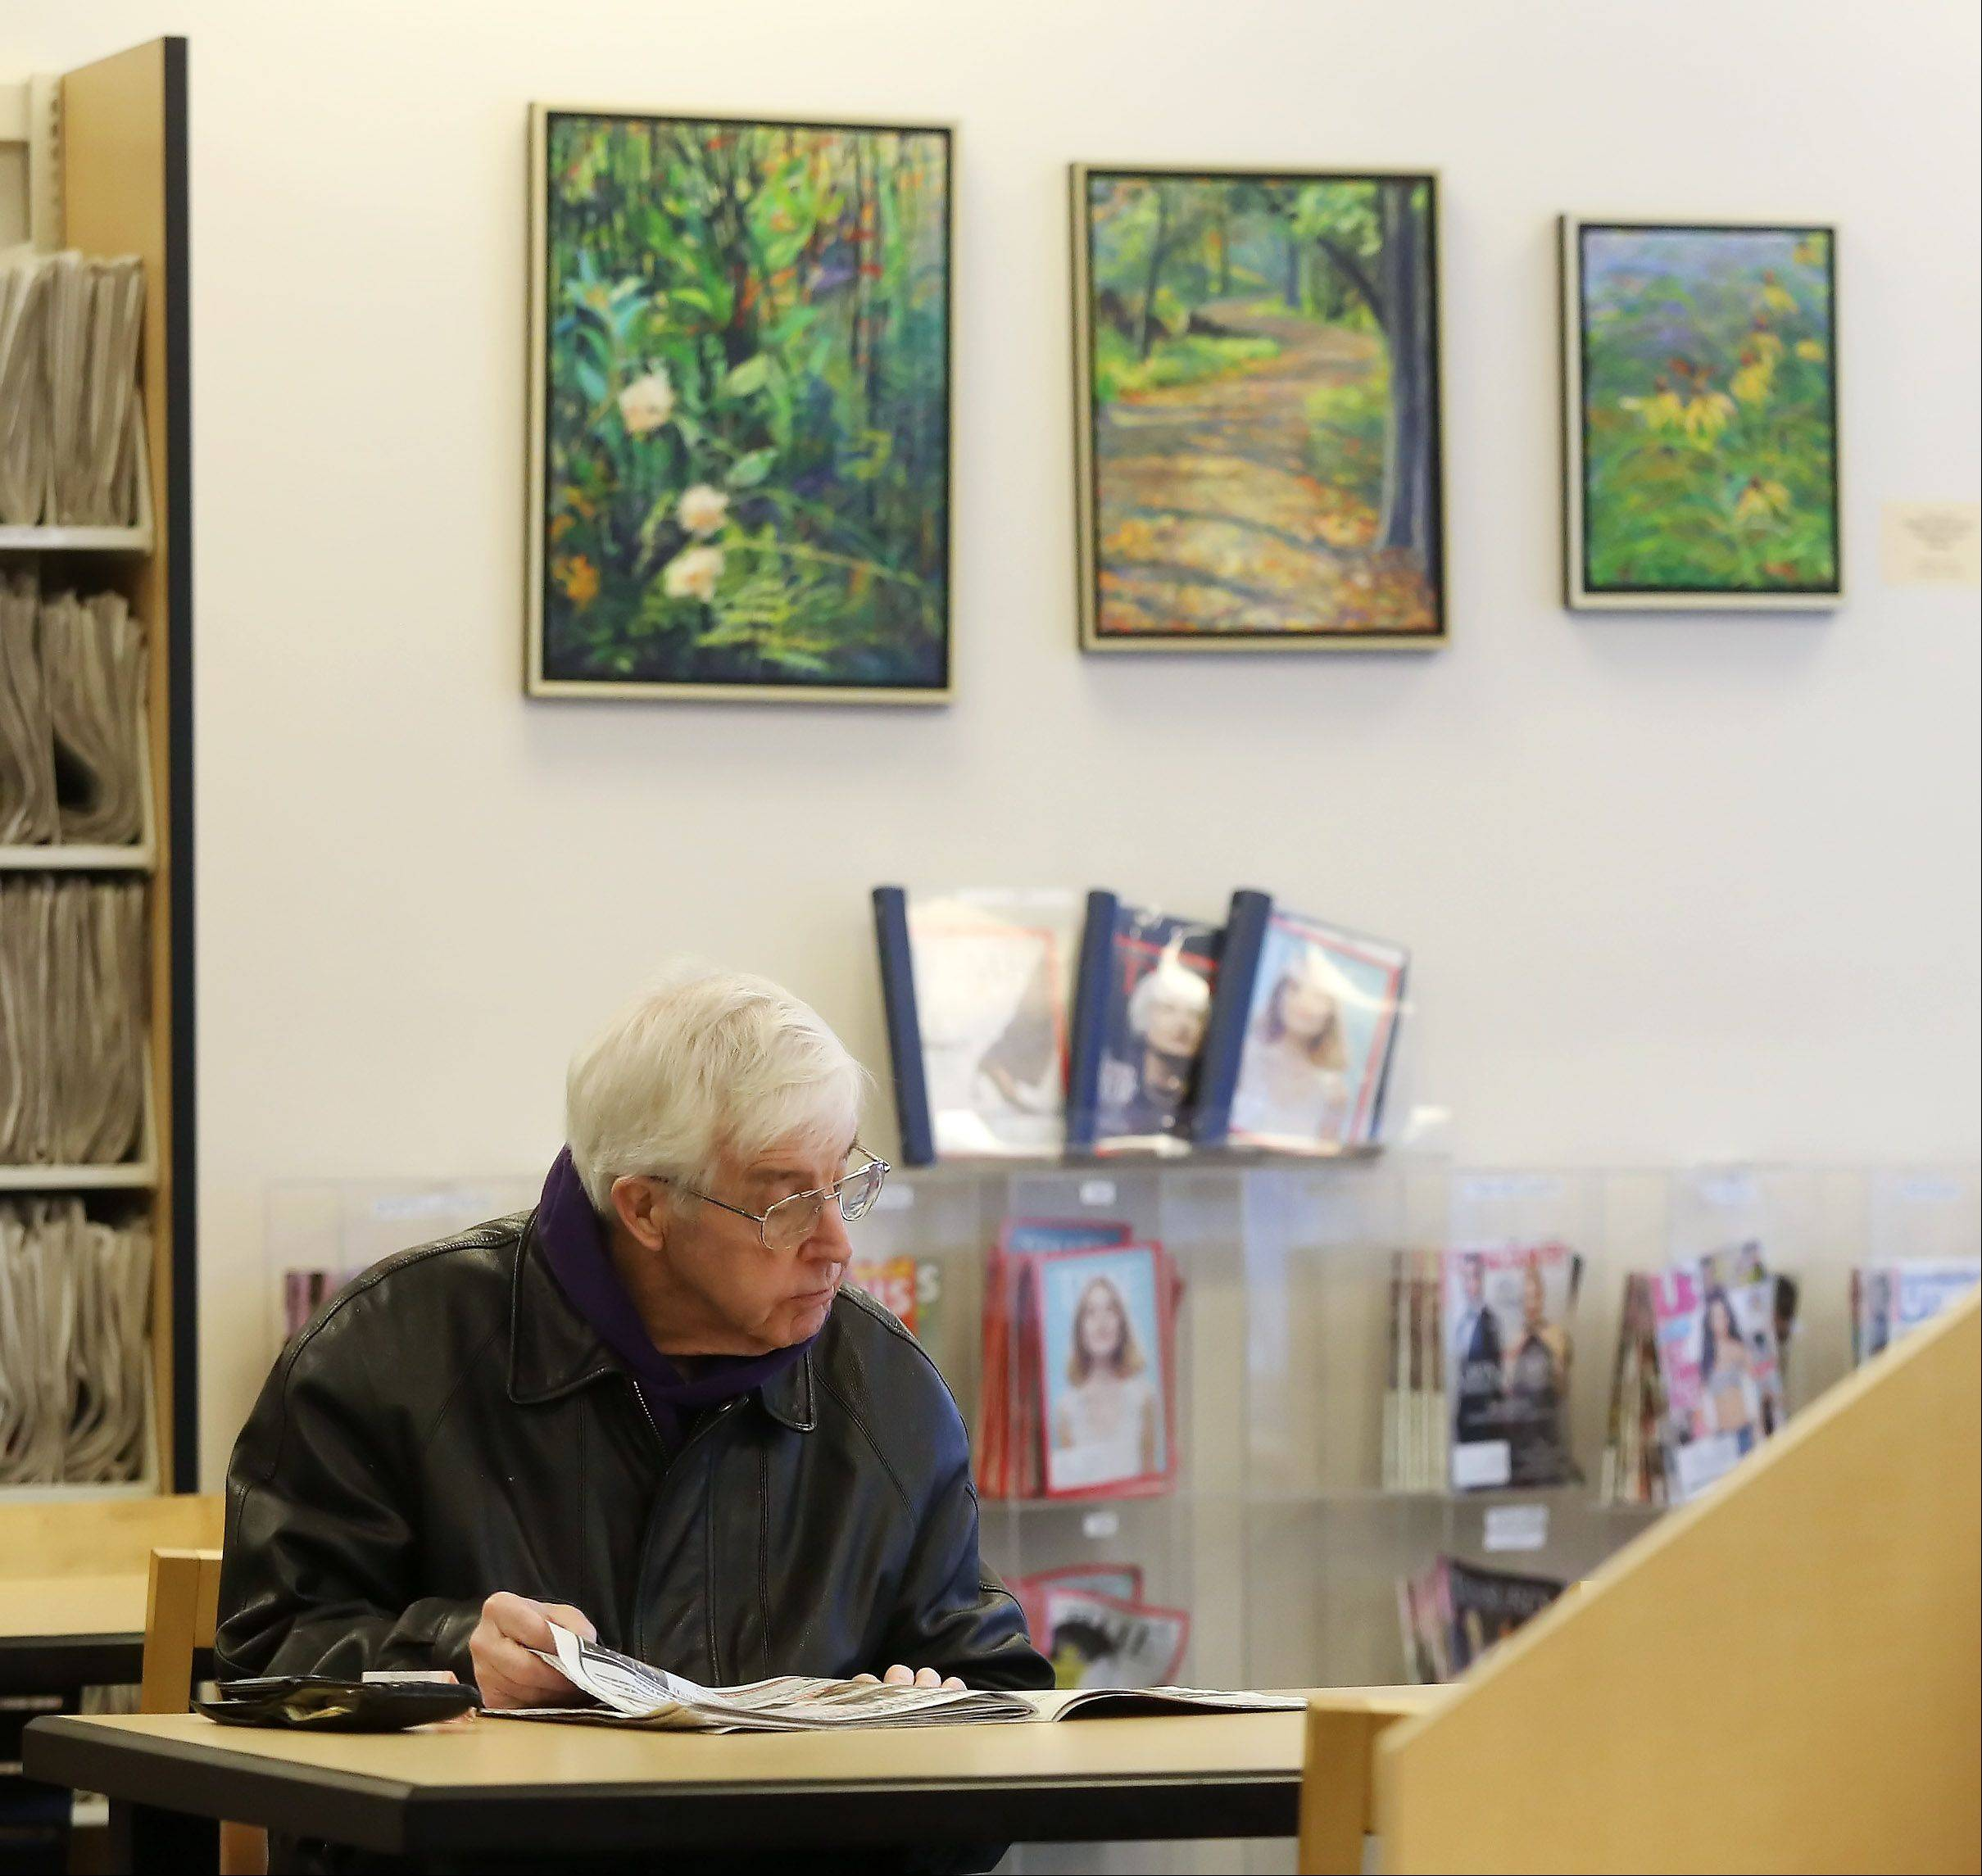 Gurnee resident William Shriver reads near artwork on the walls at Warren-Newport Public Library in Gurnee. Library officials are seeking proposals for a new commissioned piece and also are planning to display student artwork.